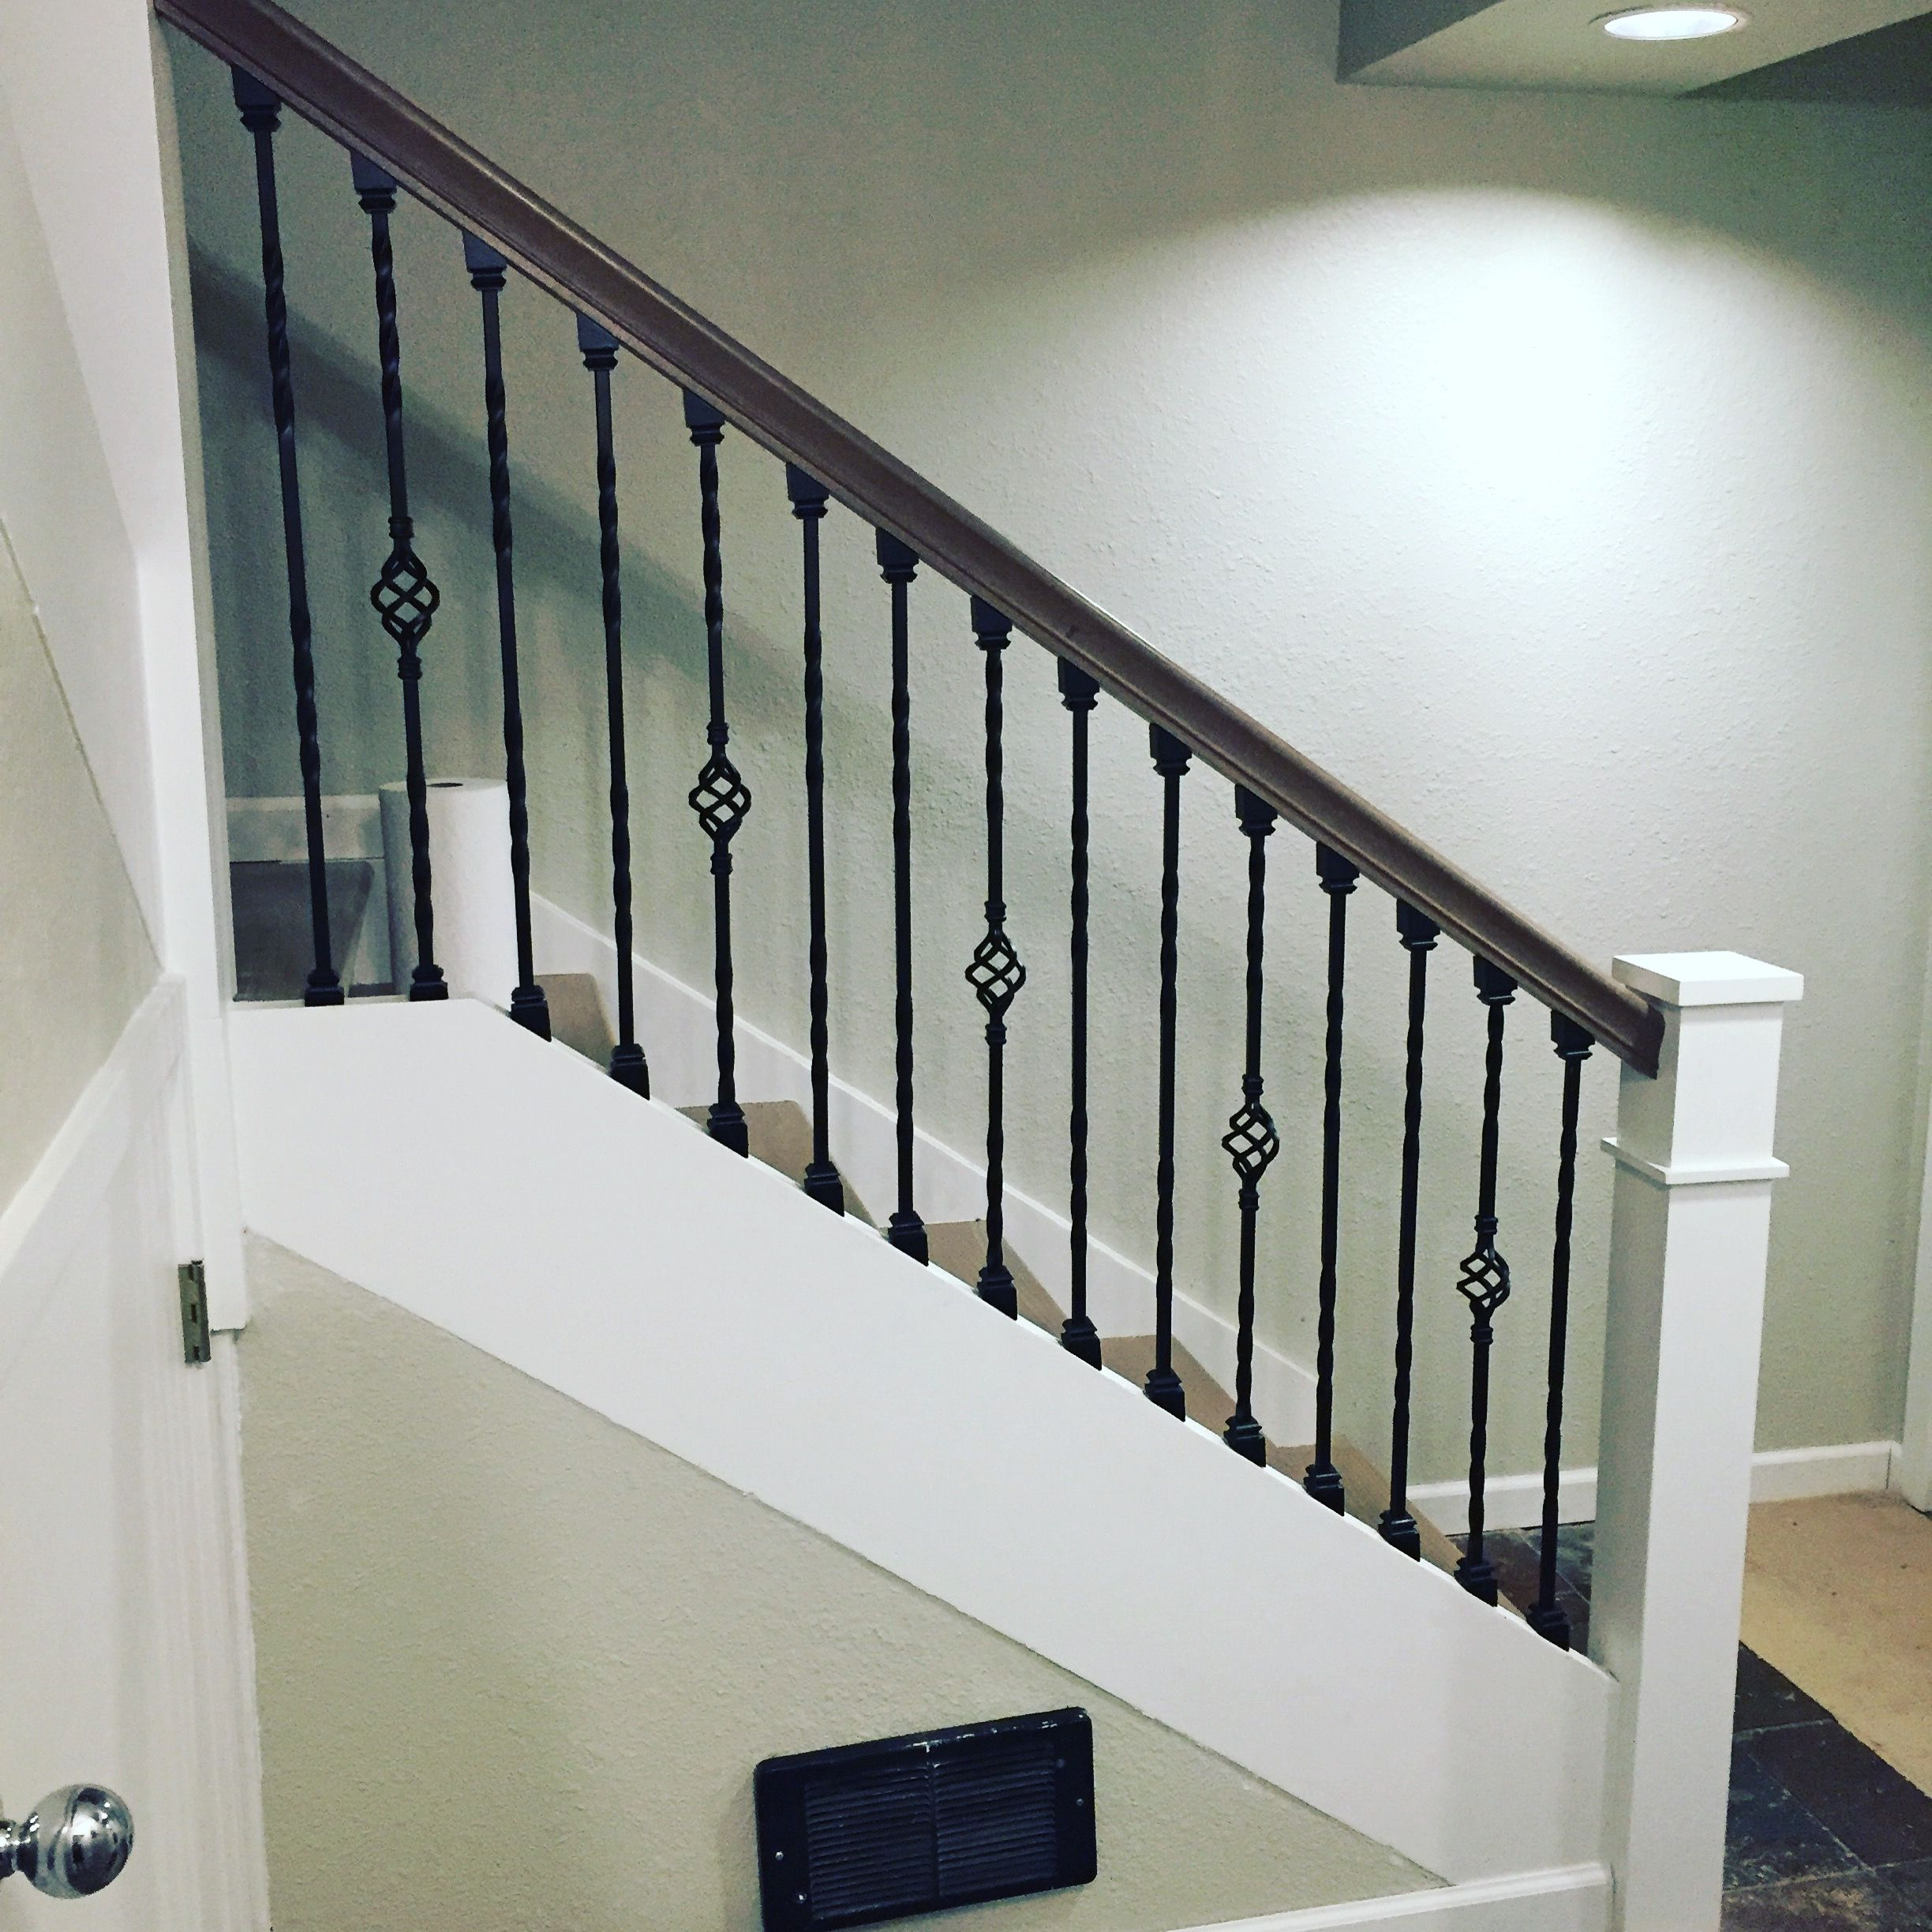 Merveilleux Wrought Iron Stair Balusters With Double Twist And Single Basket. White  Newell Posts And Custom White Oak Gray Stained Handrail And Stair Treads